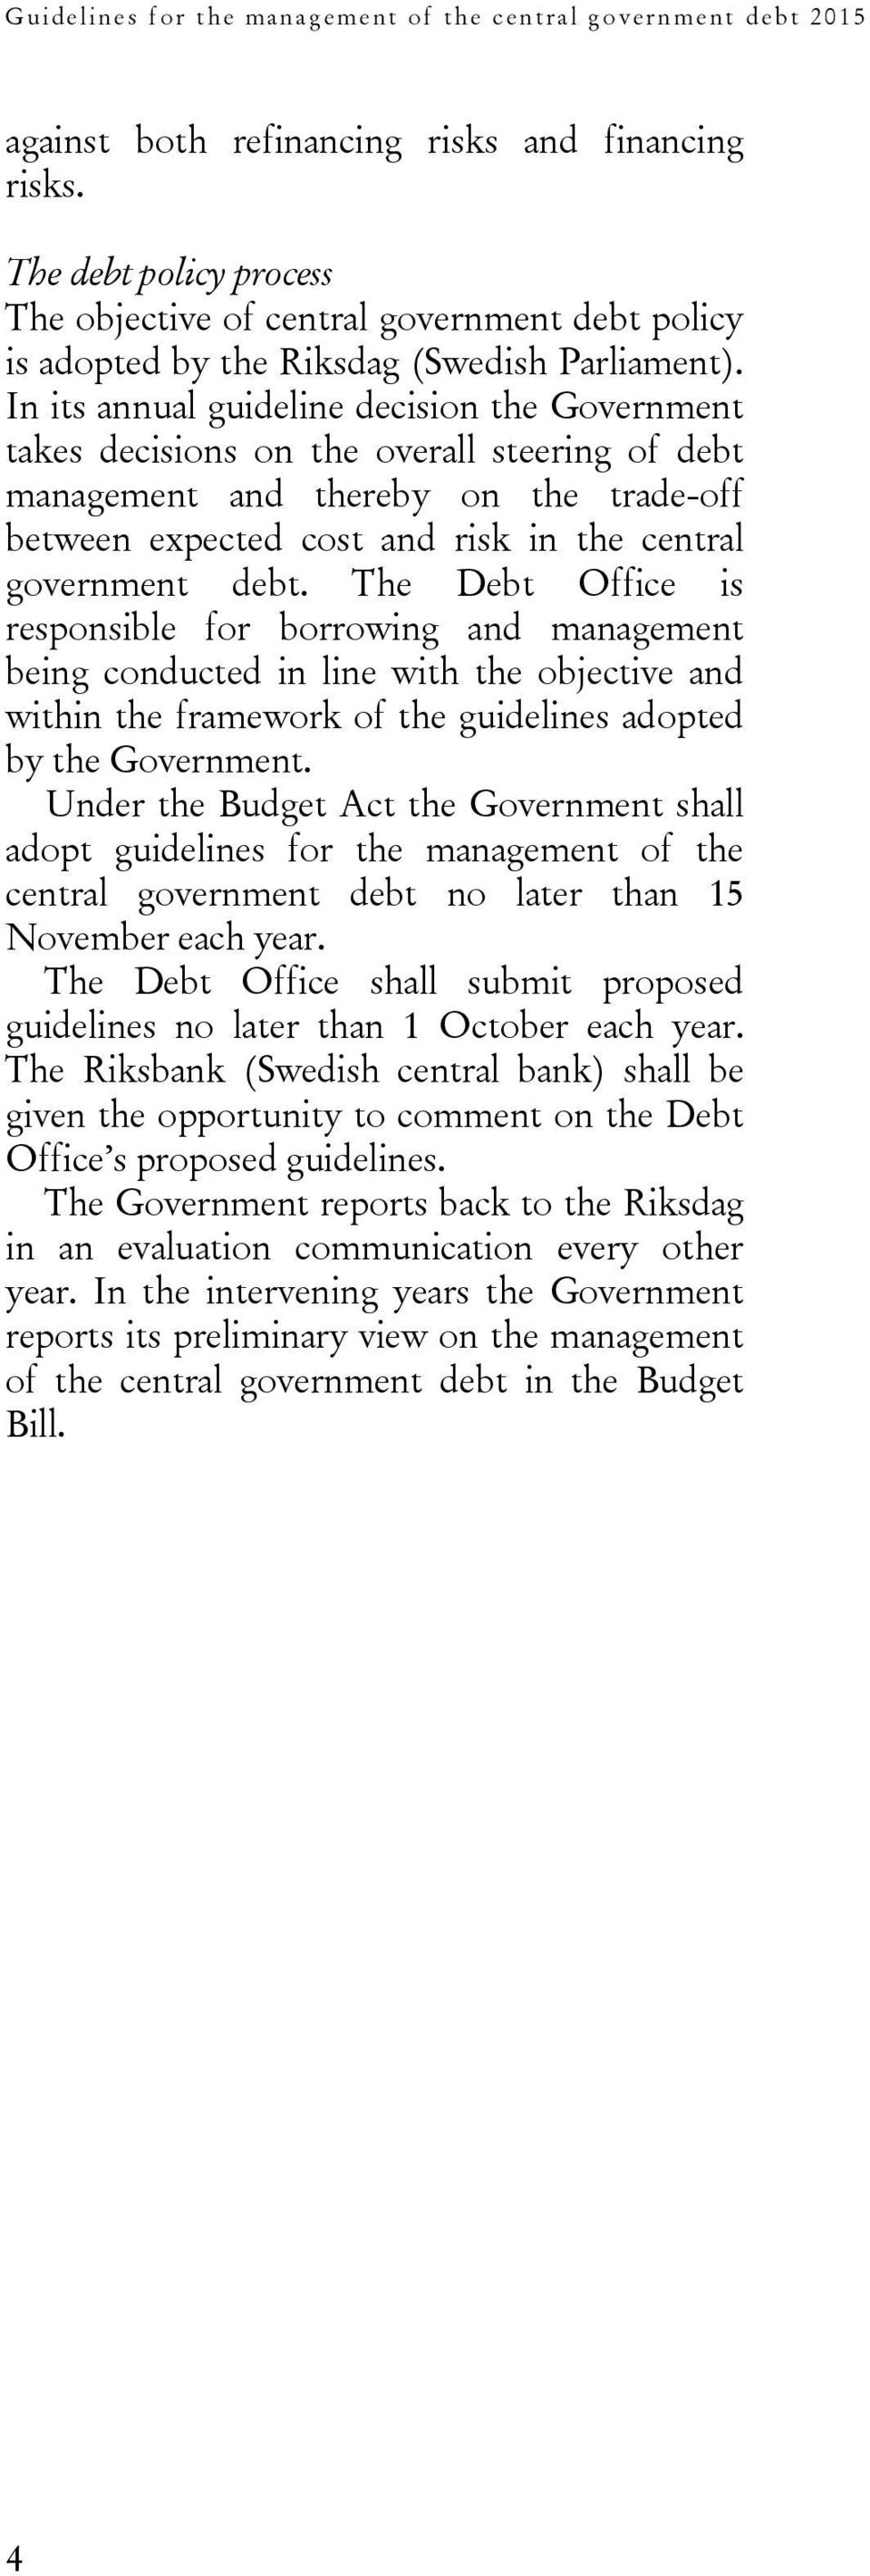 In its annual guideline decision the Government takes decisions on the overall steering of debt management and thereby on the trade-off between expected cost and risk in the central government debt.